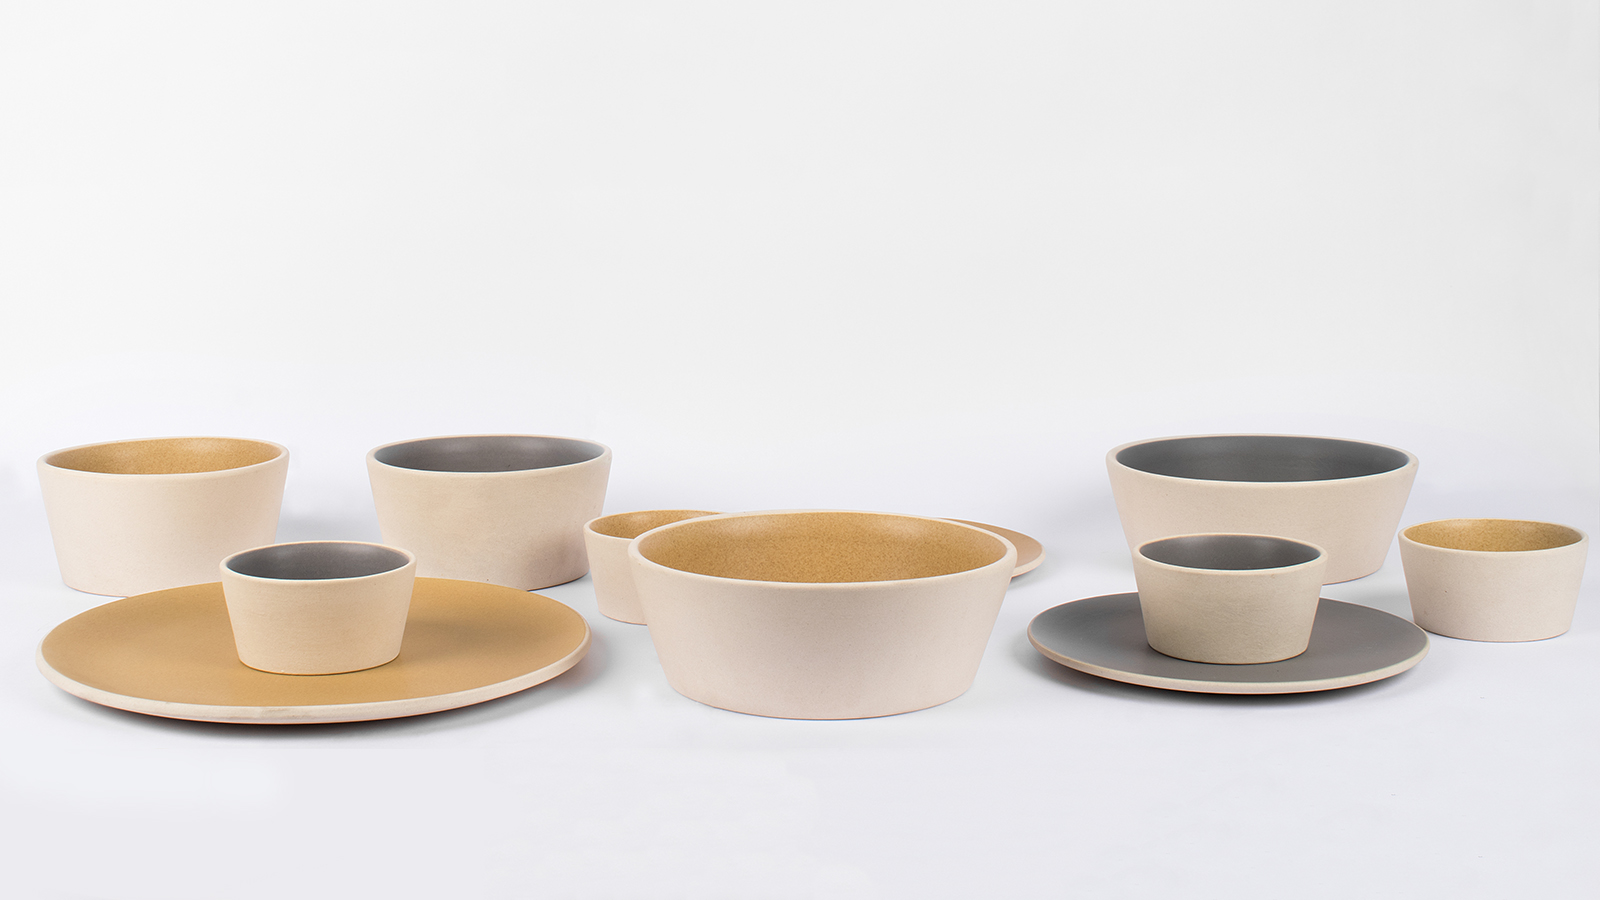 Basik Series Dinnerware